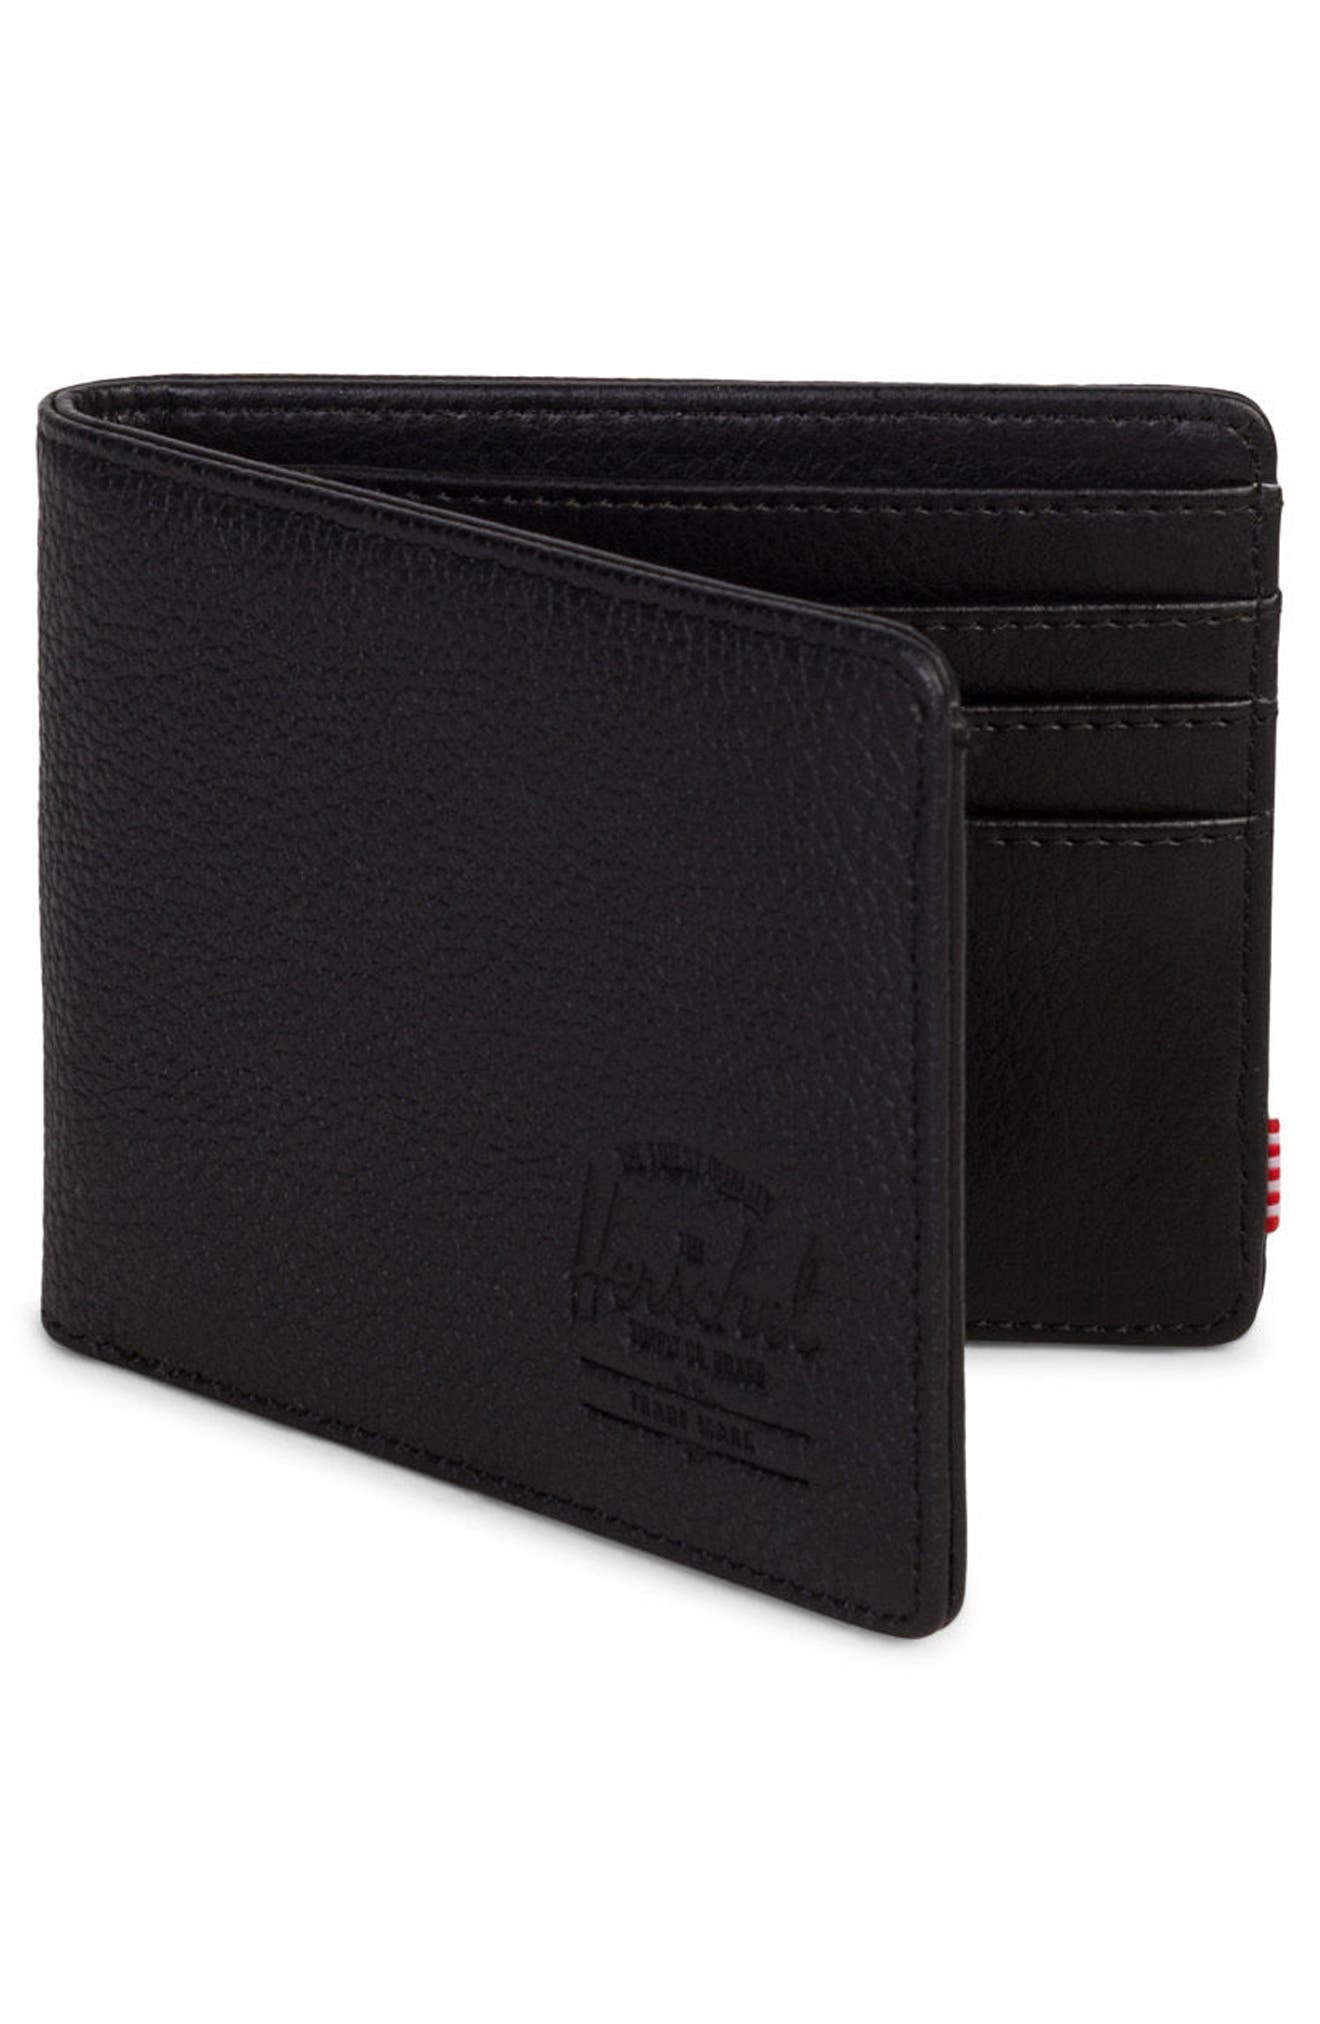 Hank Leather Wallet,                             Alternate thumbnail 3, color,                             Black Pebbled Leather